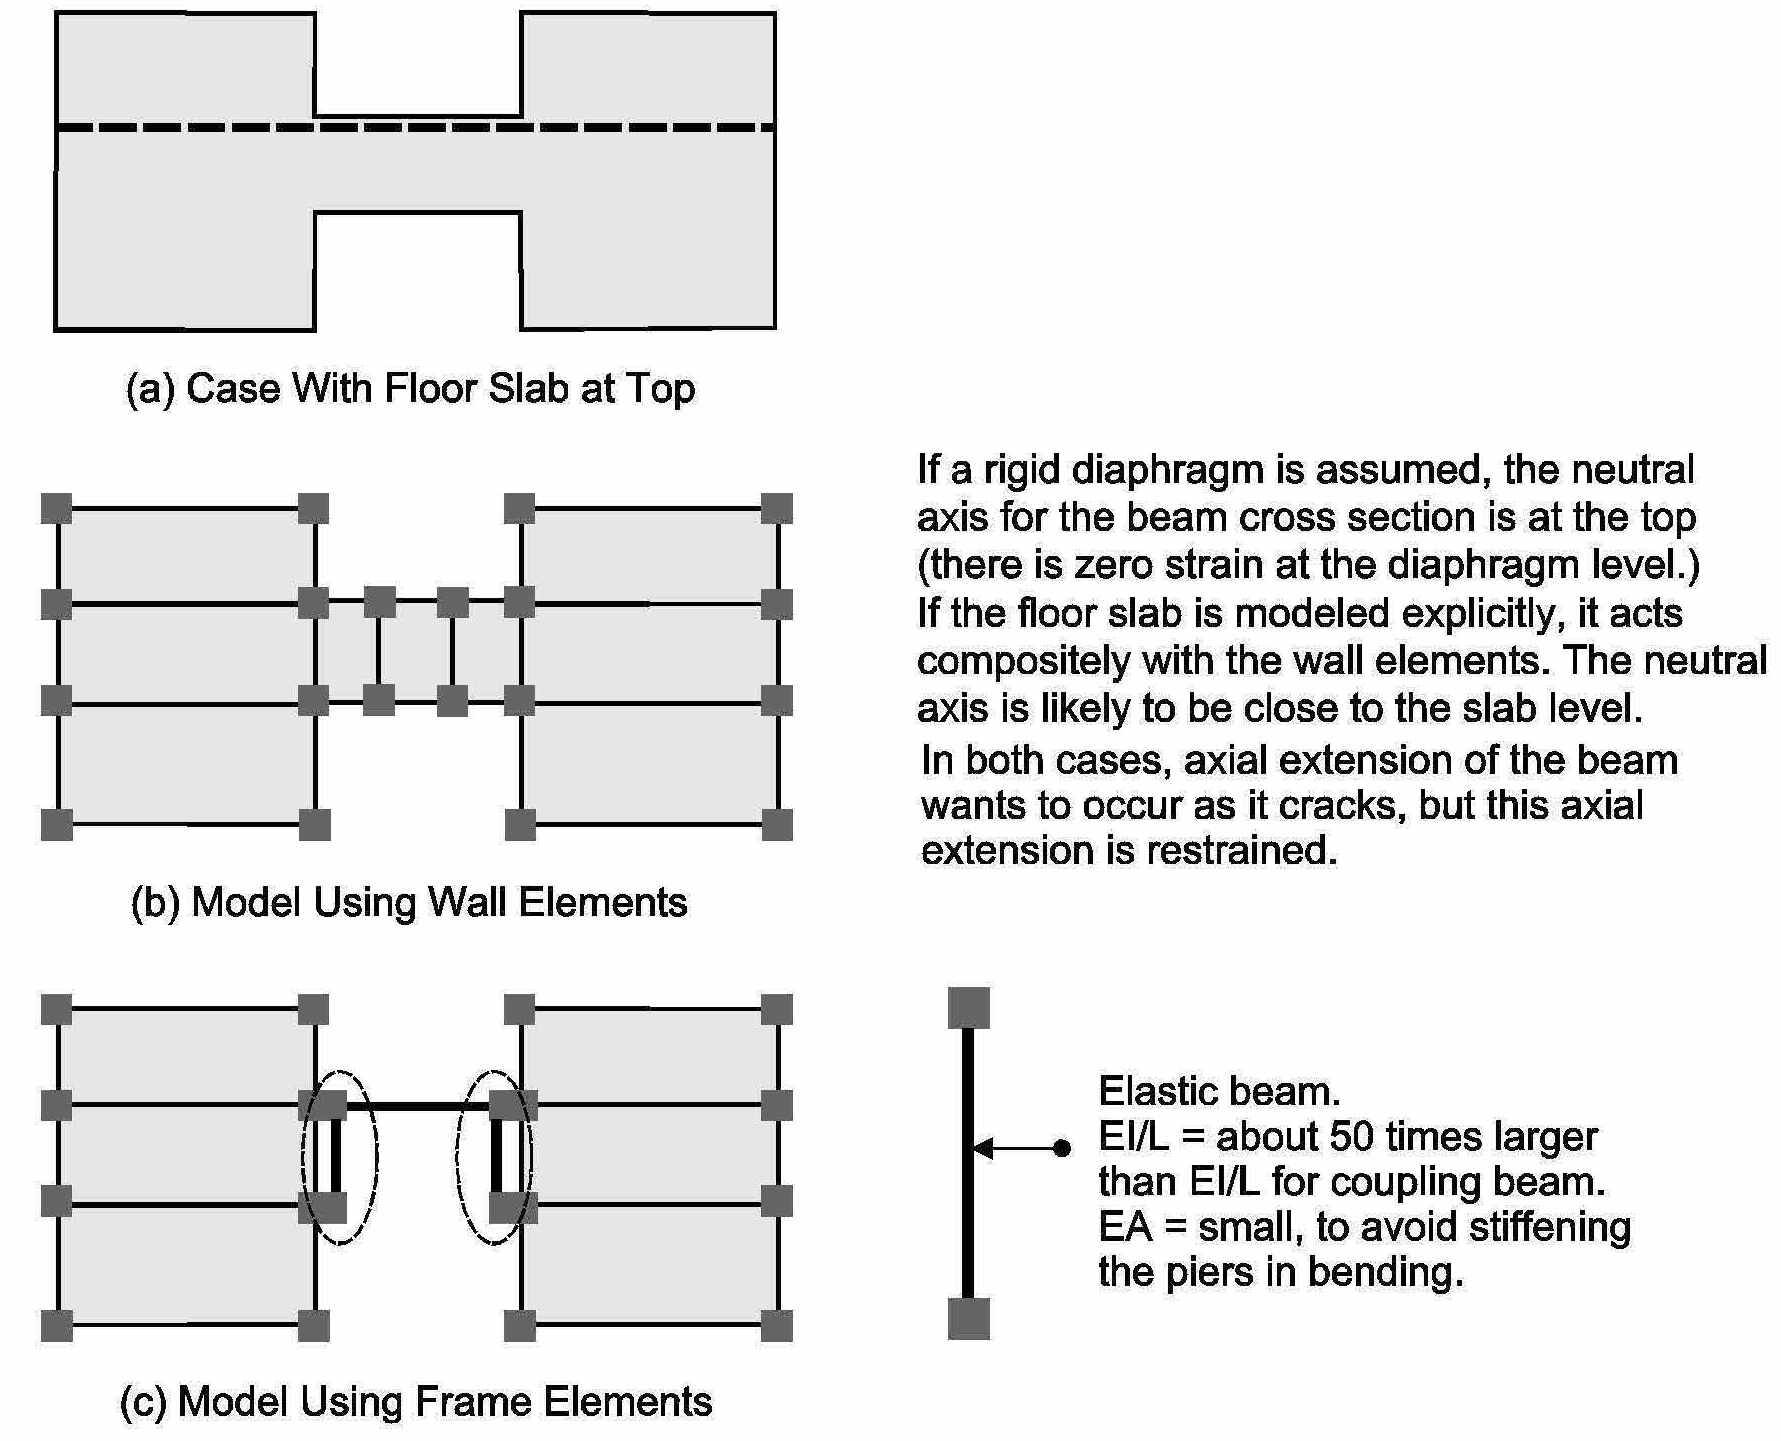 Modeling Of Coupling Beams In Shear Walls Perform 3d Computers Tutorial On How To Calculate Force Bending Moderately Deep Beam Floor Level At Top